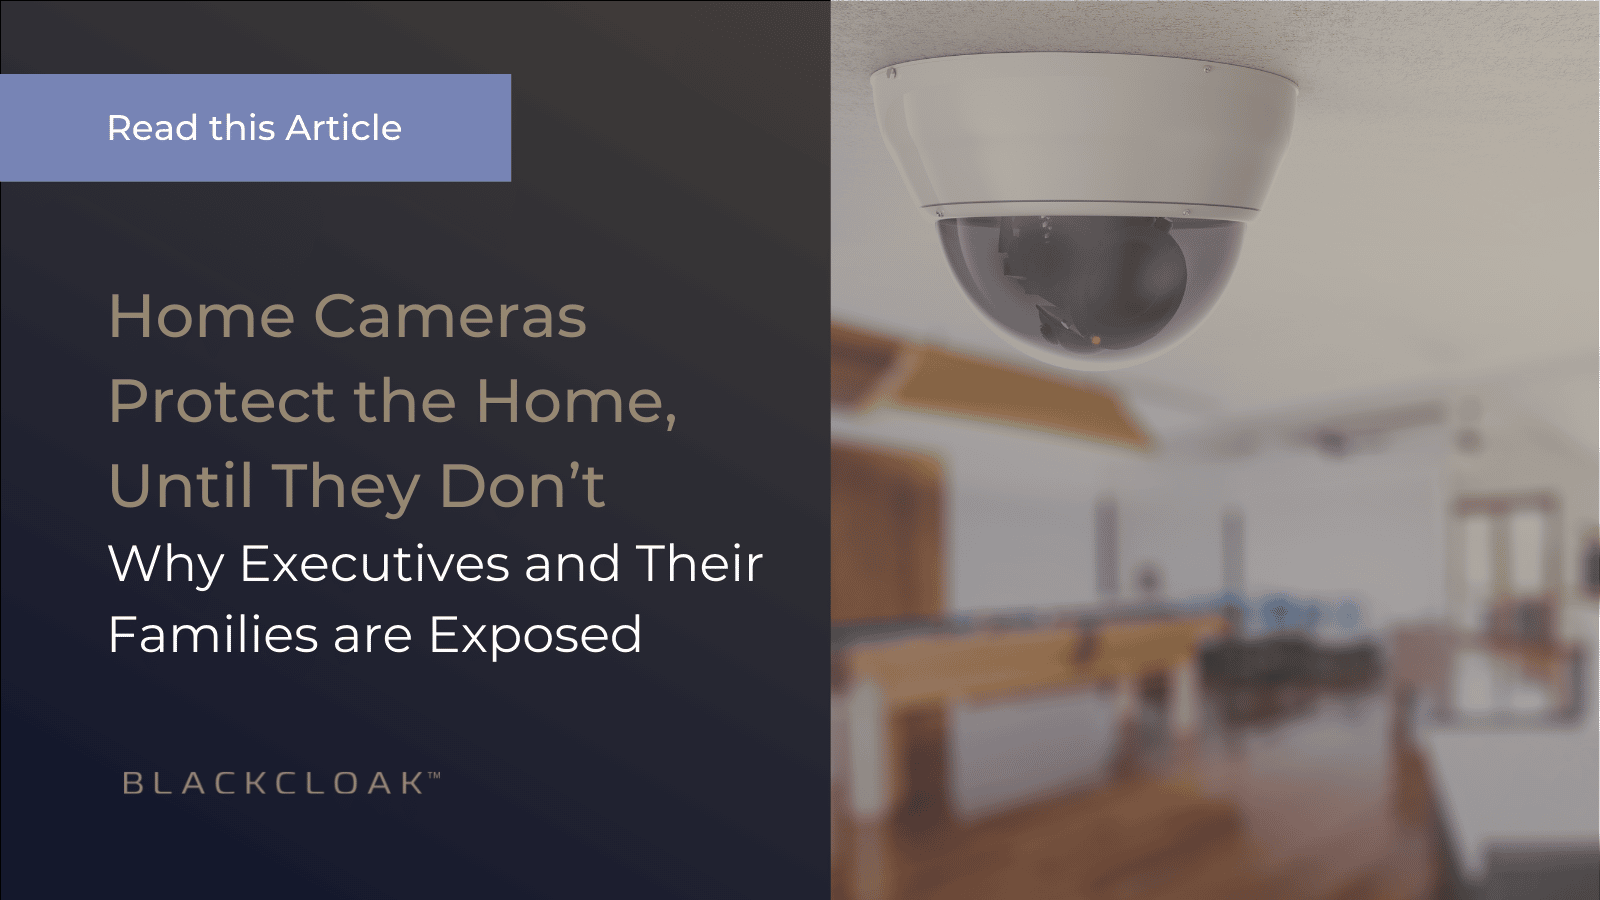 Home Cameras Protect the Home Until They Don't